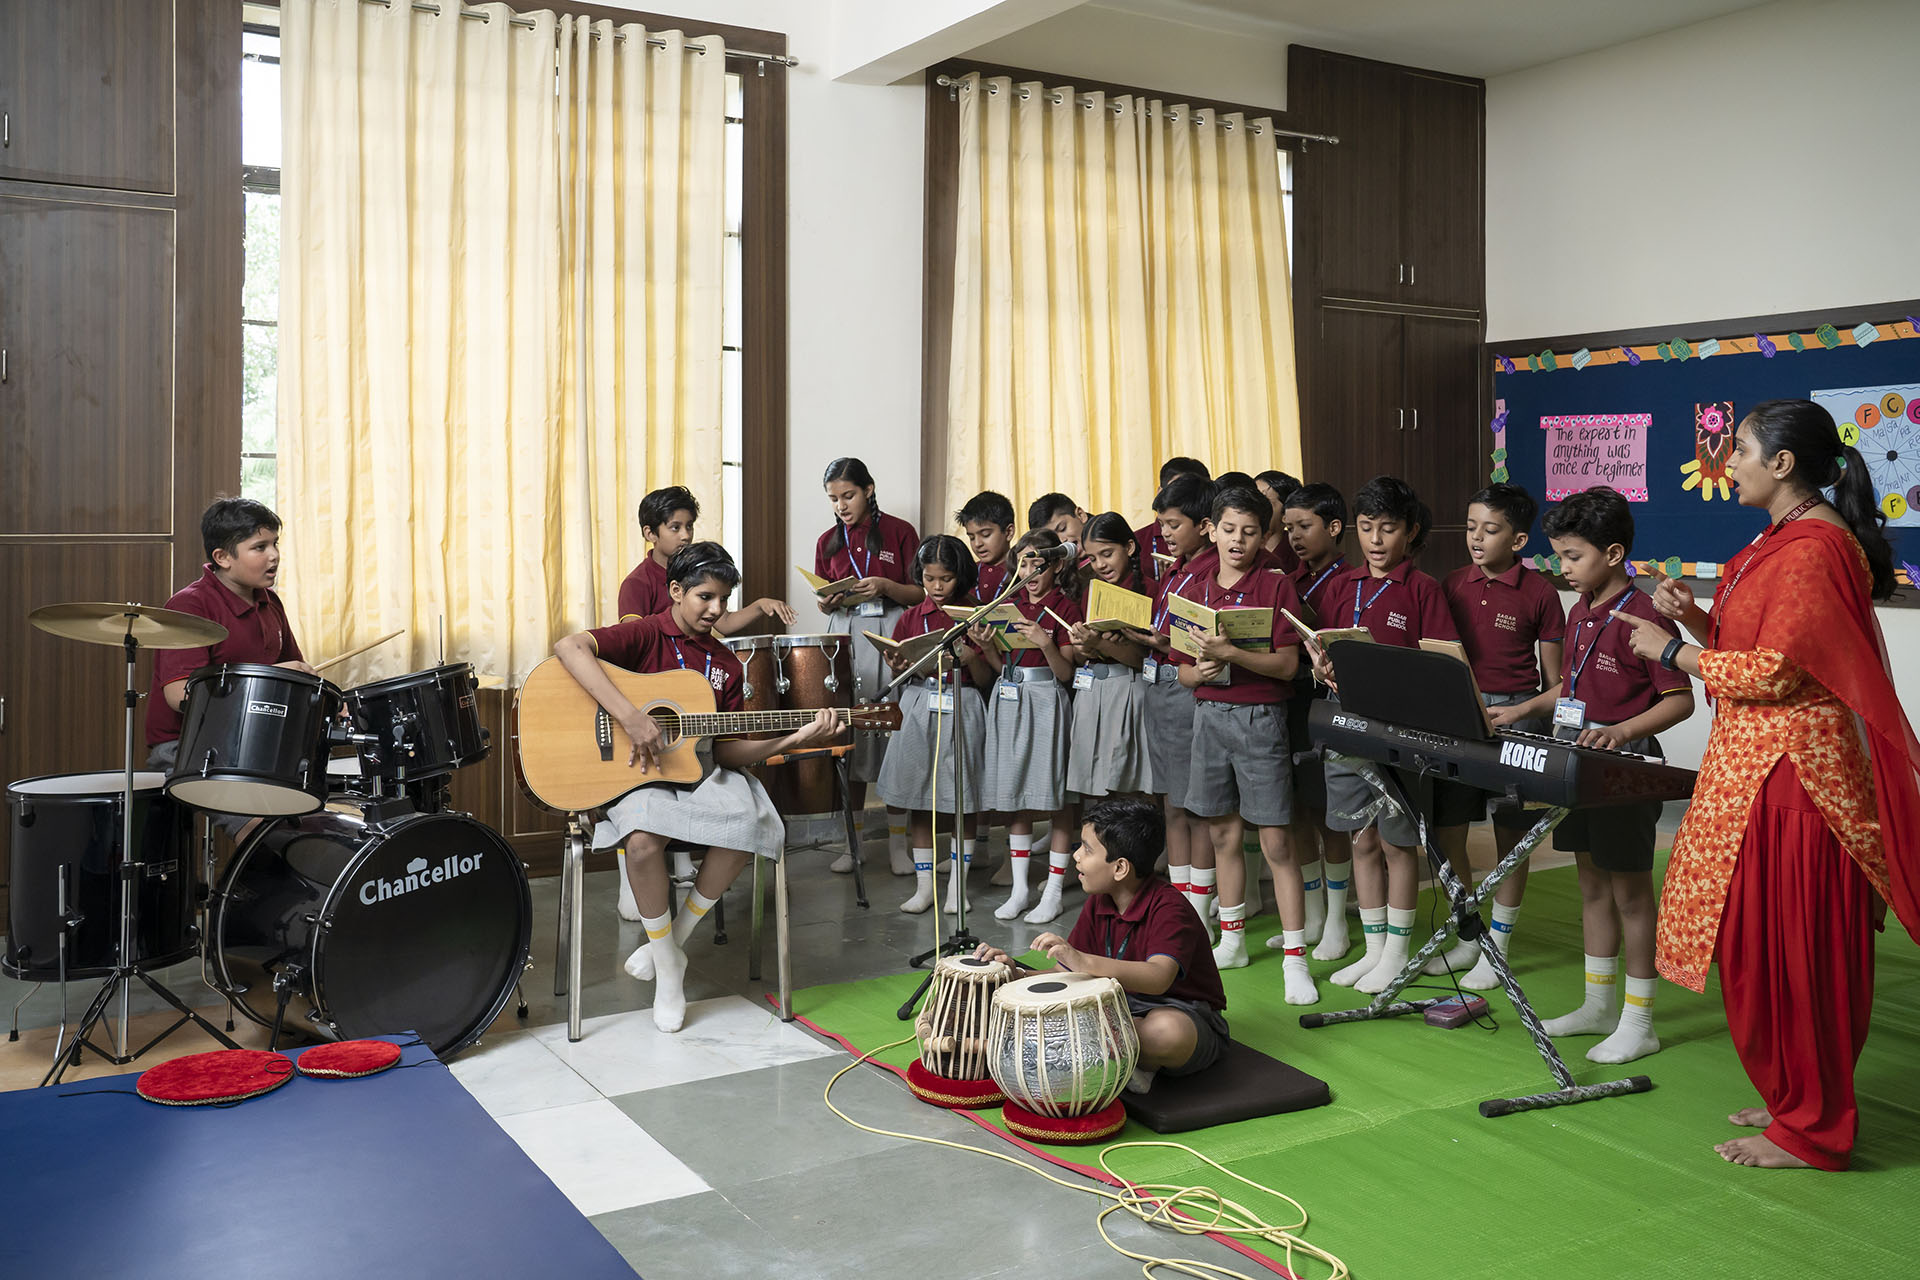 top cbse schools in central india, day boarding schools in bhopal, boarding schools in bhopal